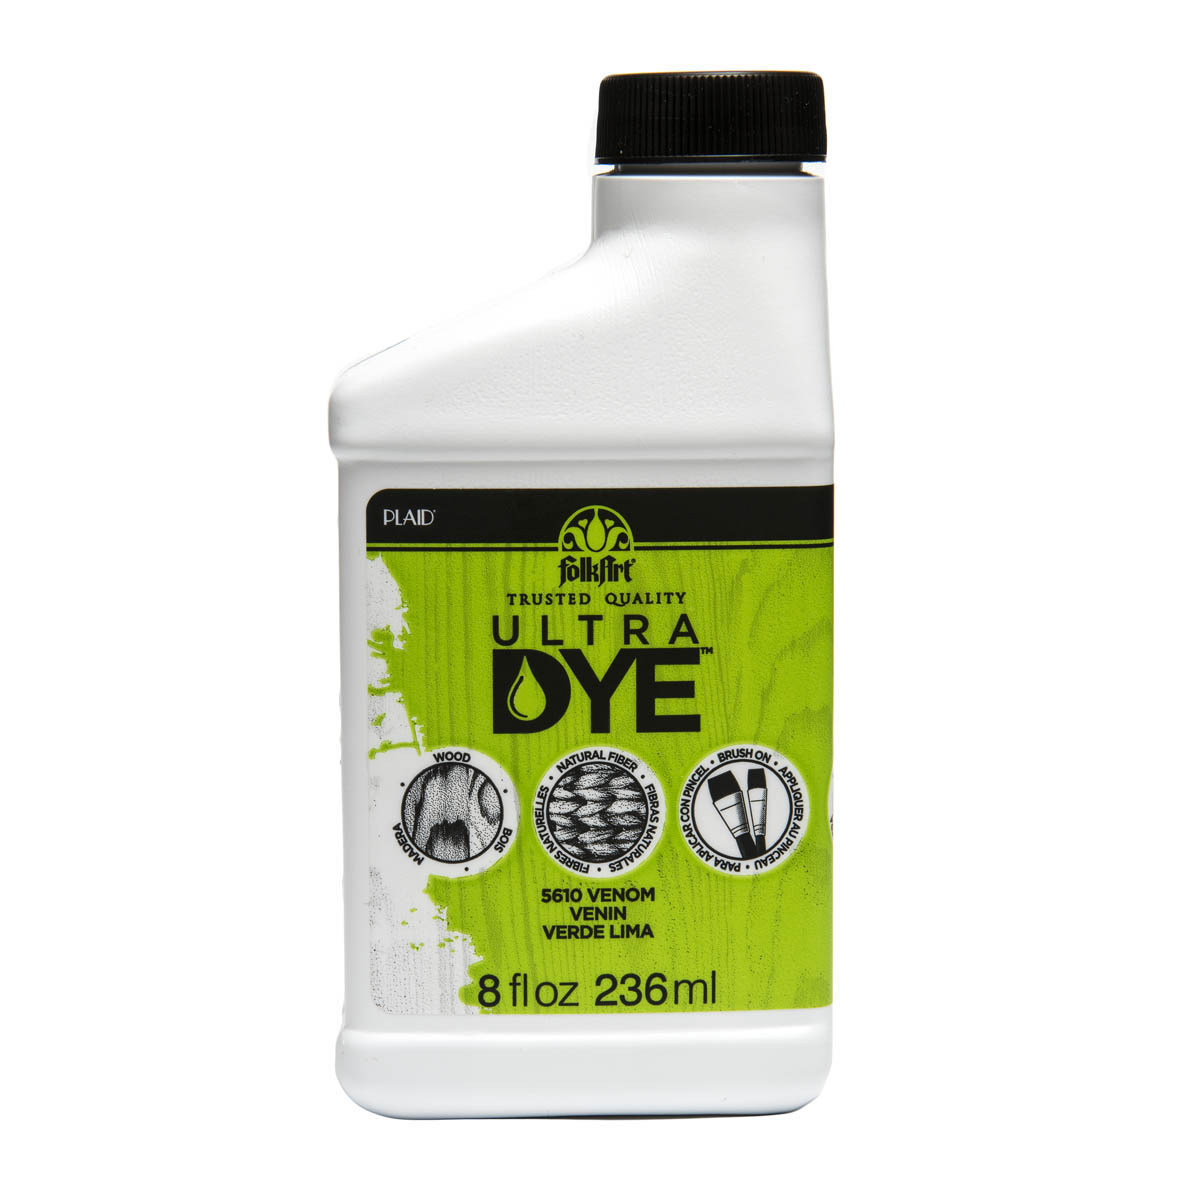 FolkArt ® Ultra Dye™ Colors - Venom, 8 oz. - 5610